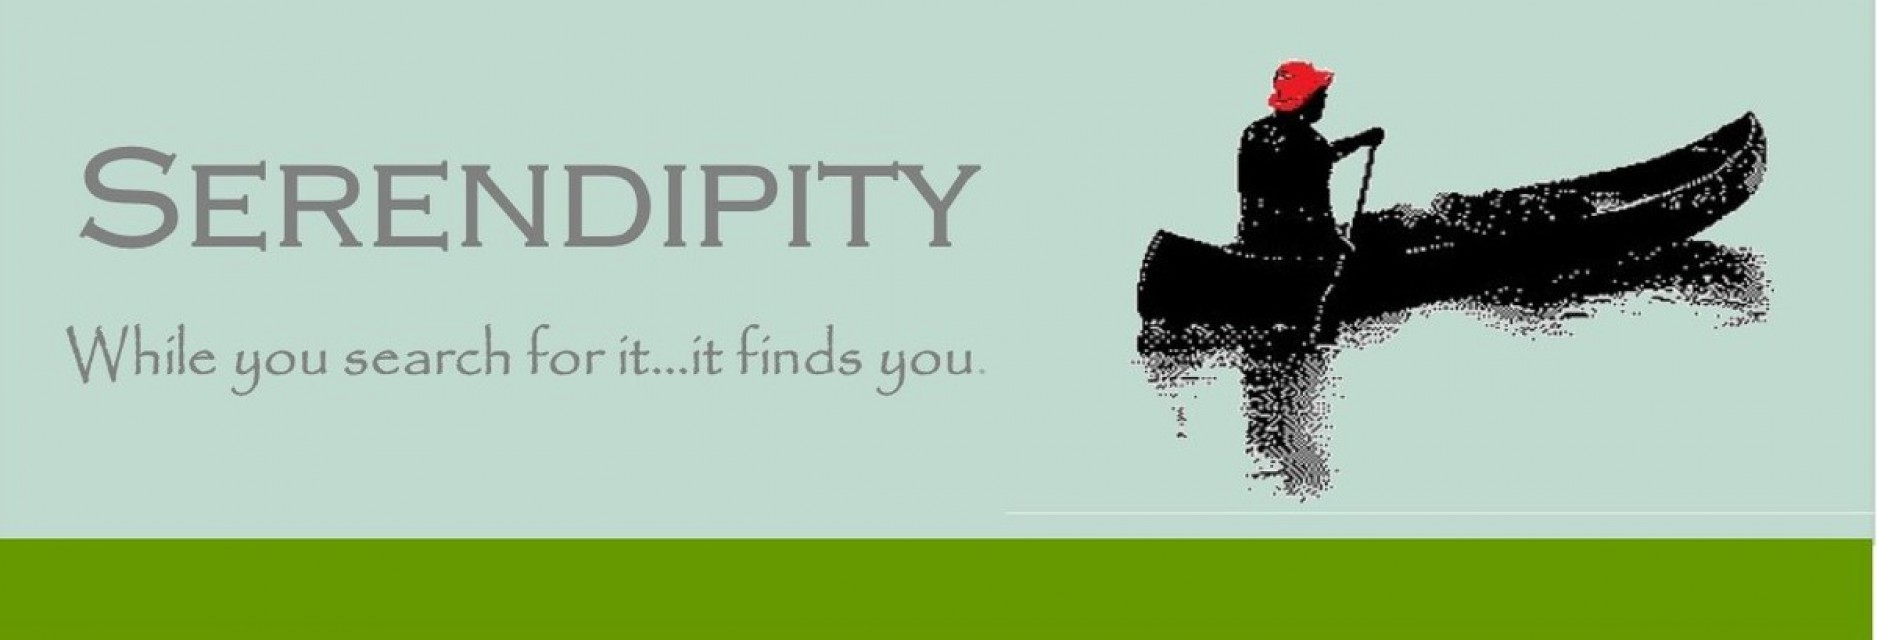 Serendipity - While you search for it ....it finds you.